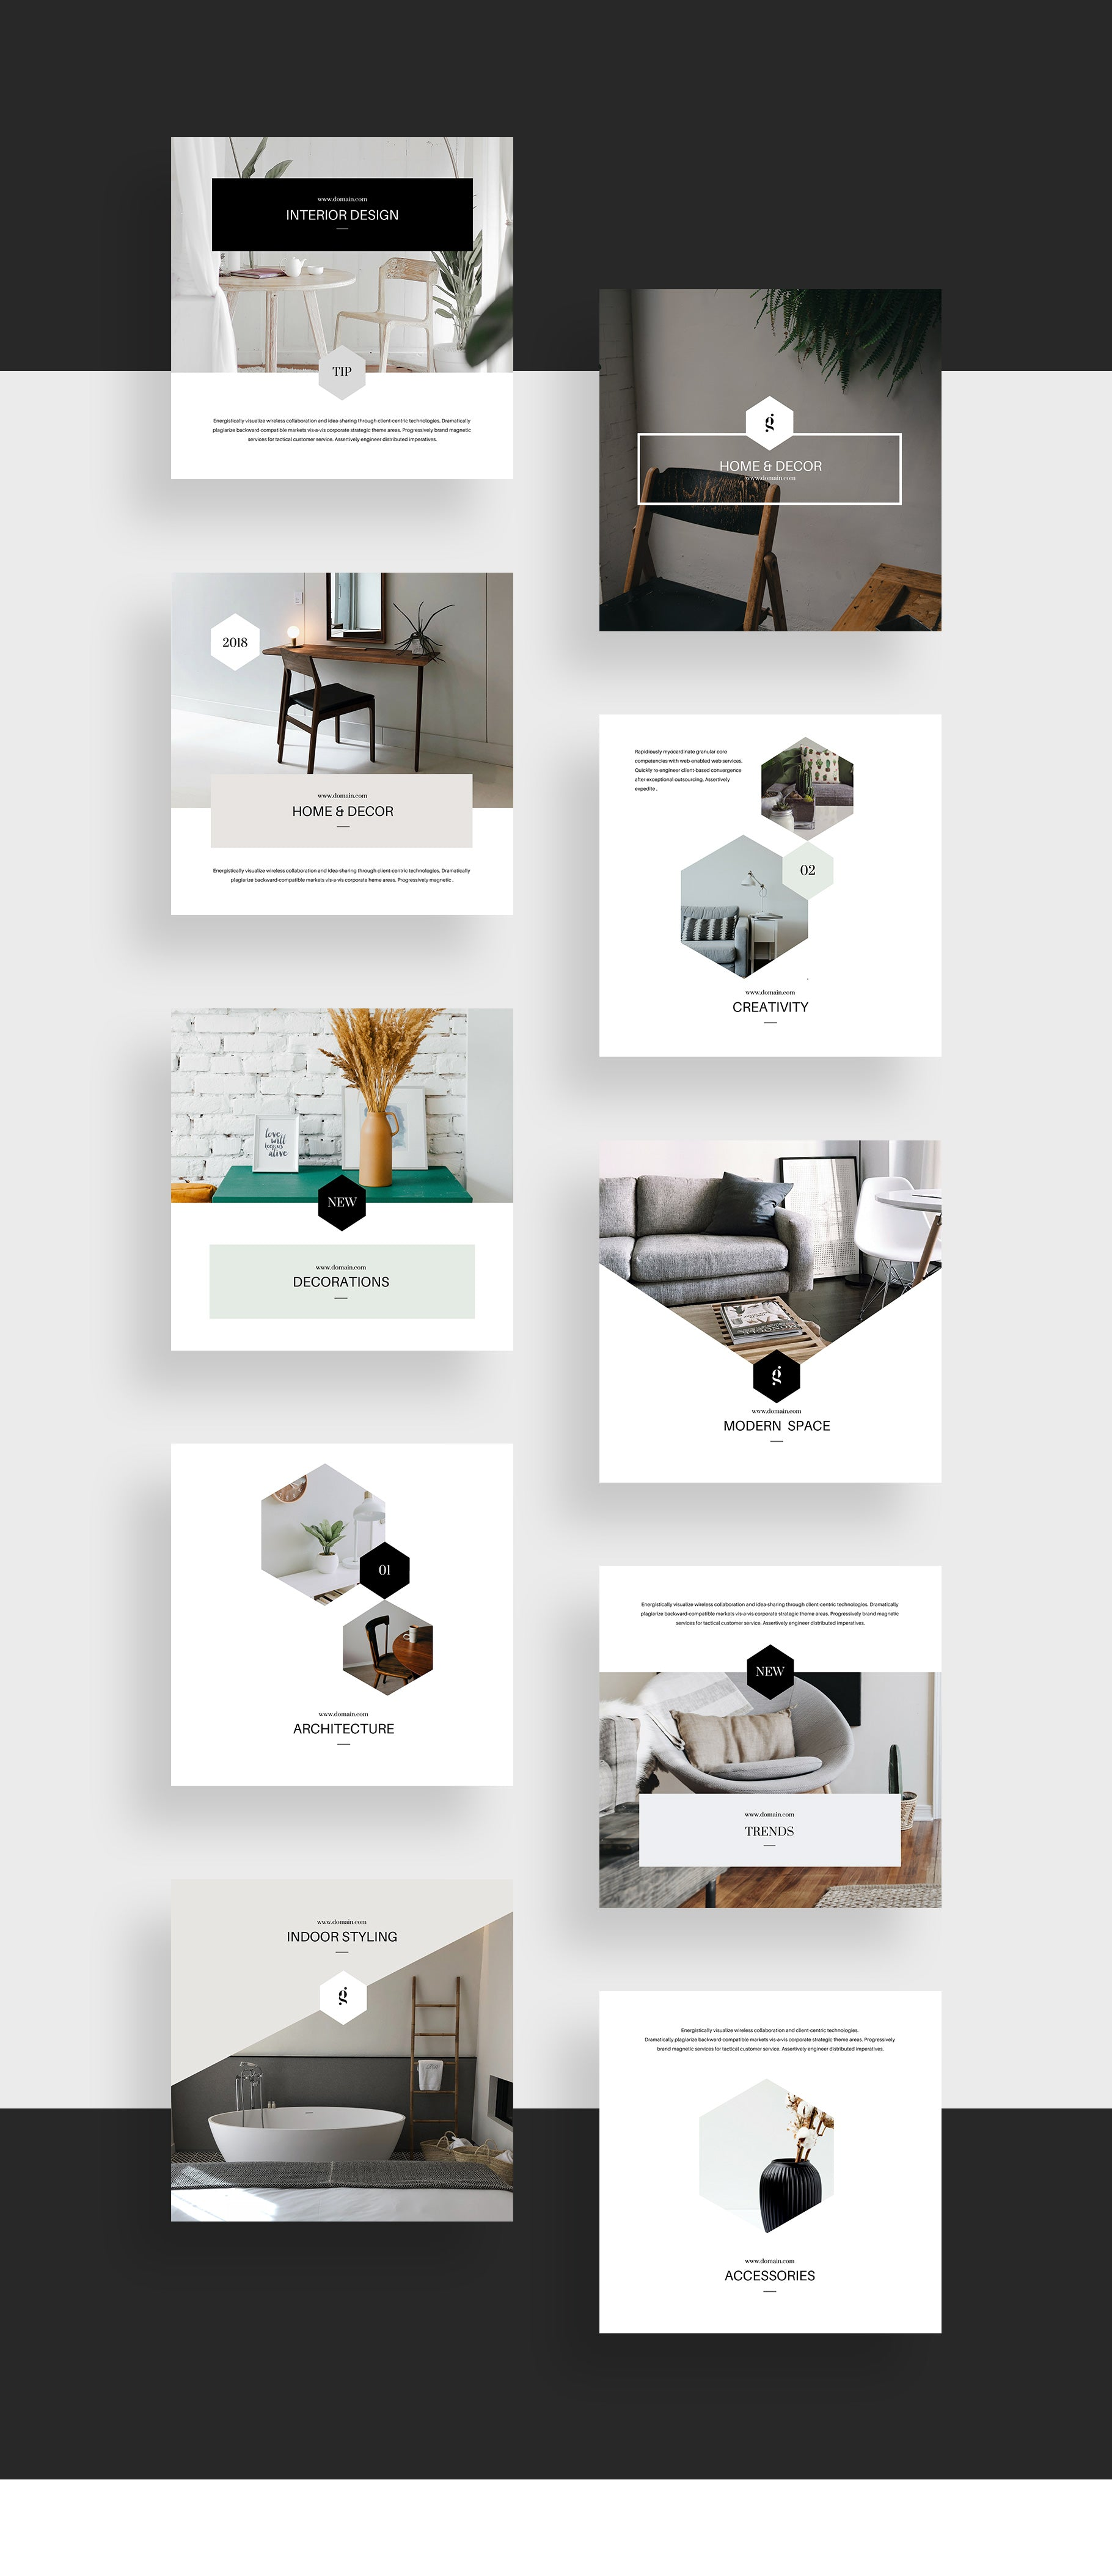 Decor-Canva-Social-Media-Pack-by-GoaShape